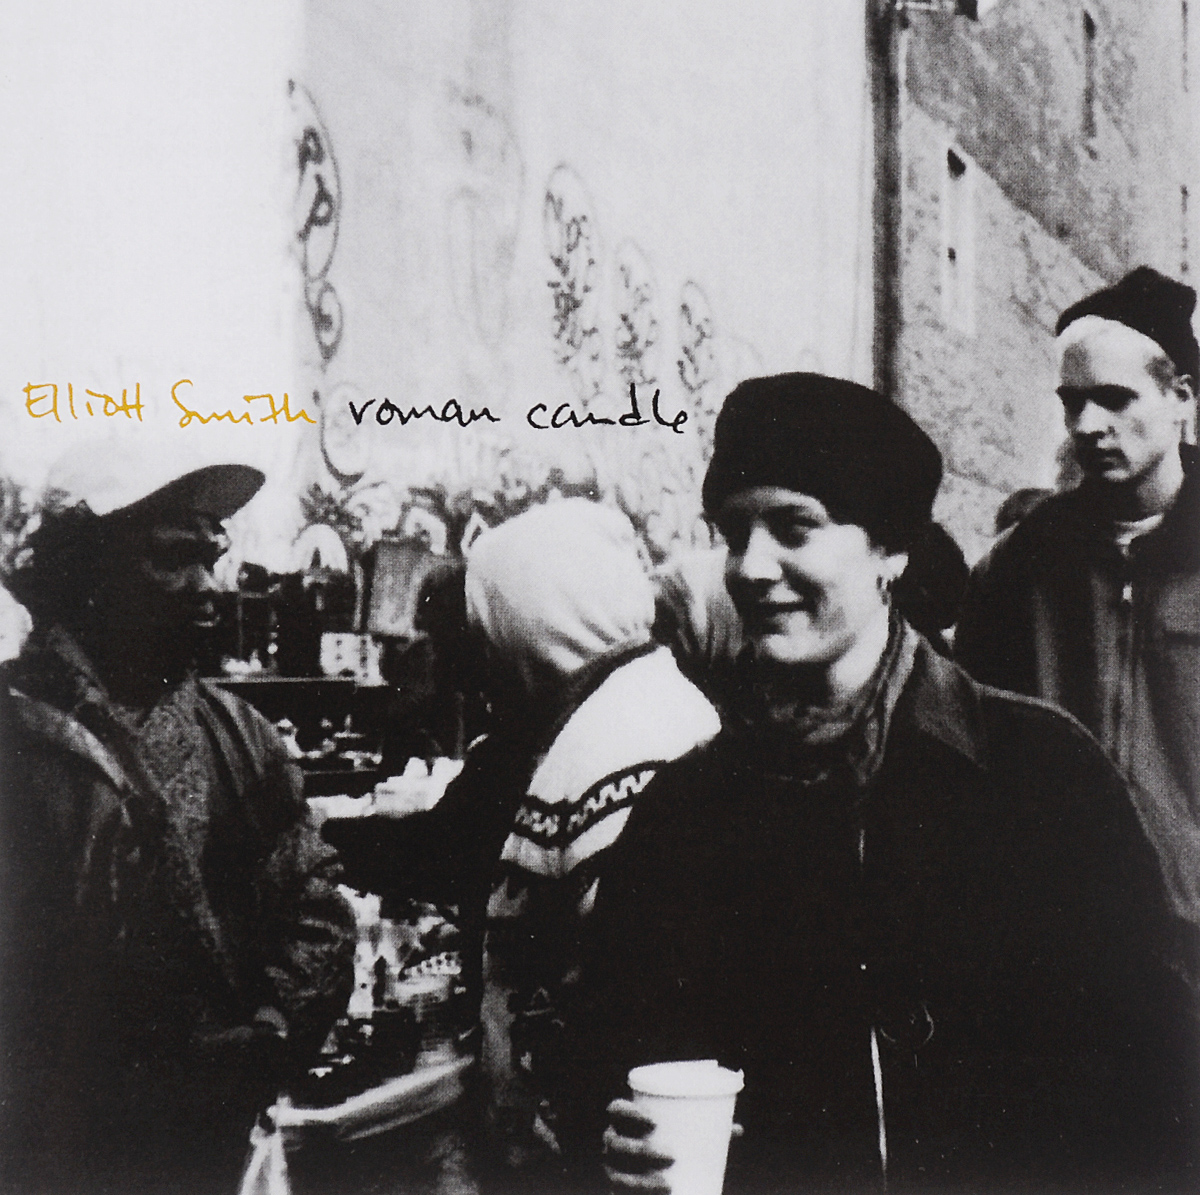 Эллиот Смит Elliott Smith. Roman Candle